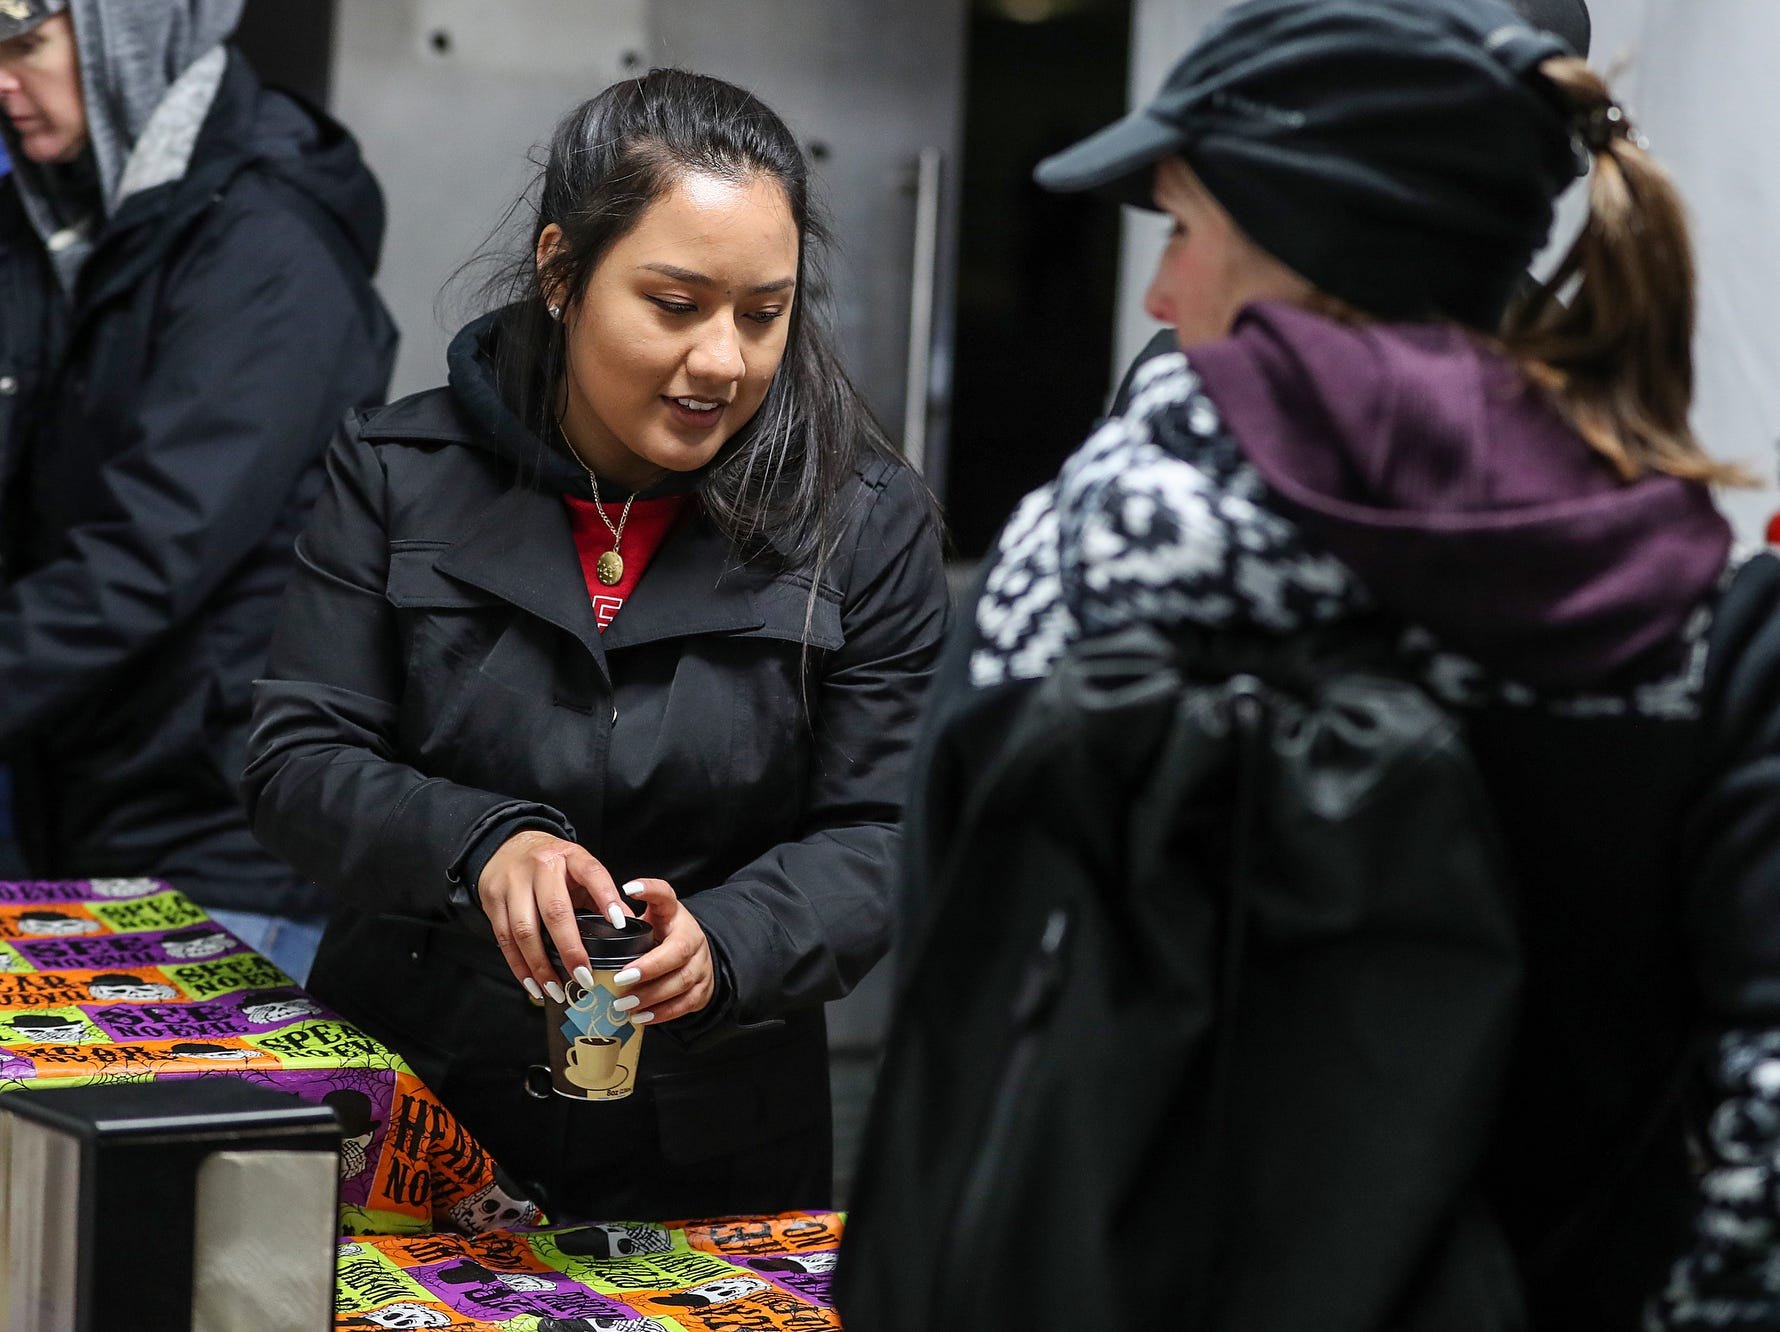 Hot chocolate is sold on opening night of the annual Headless Horseman Halloween festival at Conner Prairie in Fishers, Ind., Thursday, Oct. 11, 2018. The festival is held from 6 to 9 p.m. every Thursday through Sunday, ending Oct. 28, 2018.